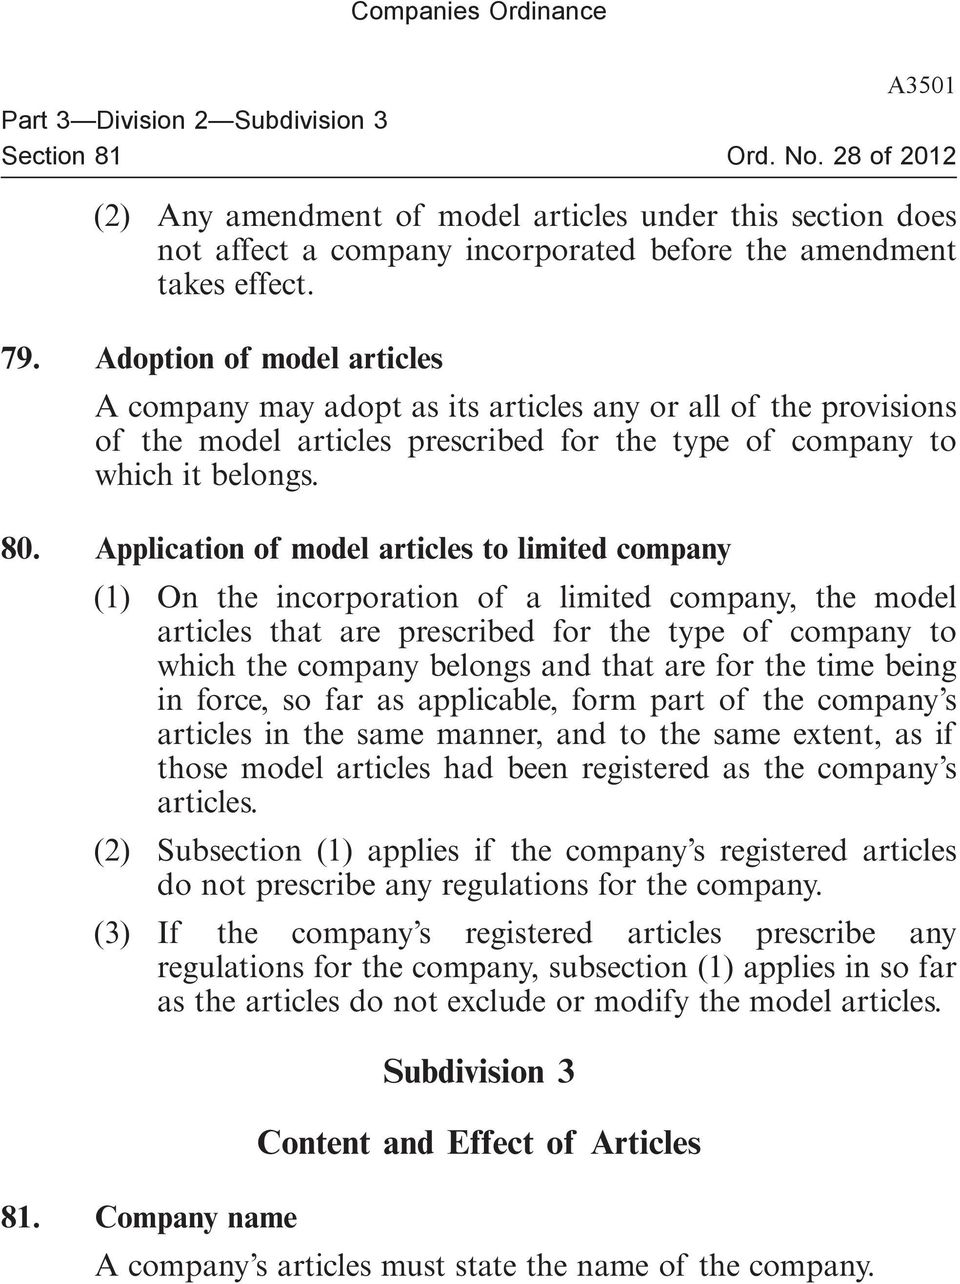 Application of model articles to limited company (1) On the incorporation of a limited company, the model articles that are prescribed for the type of company to which the company belongs and that